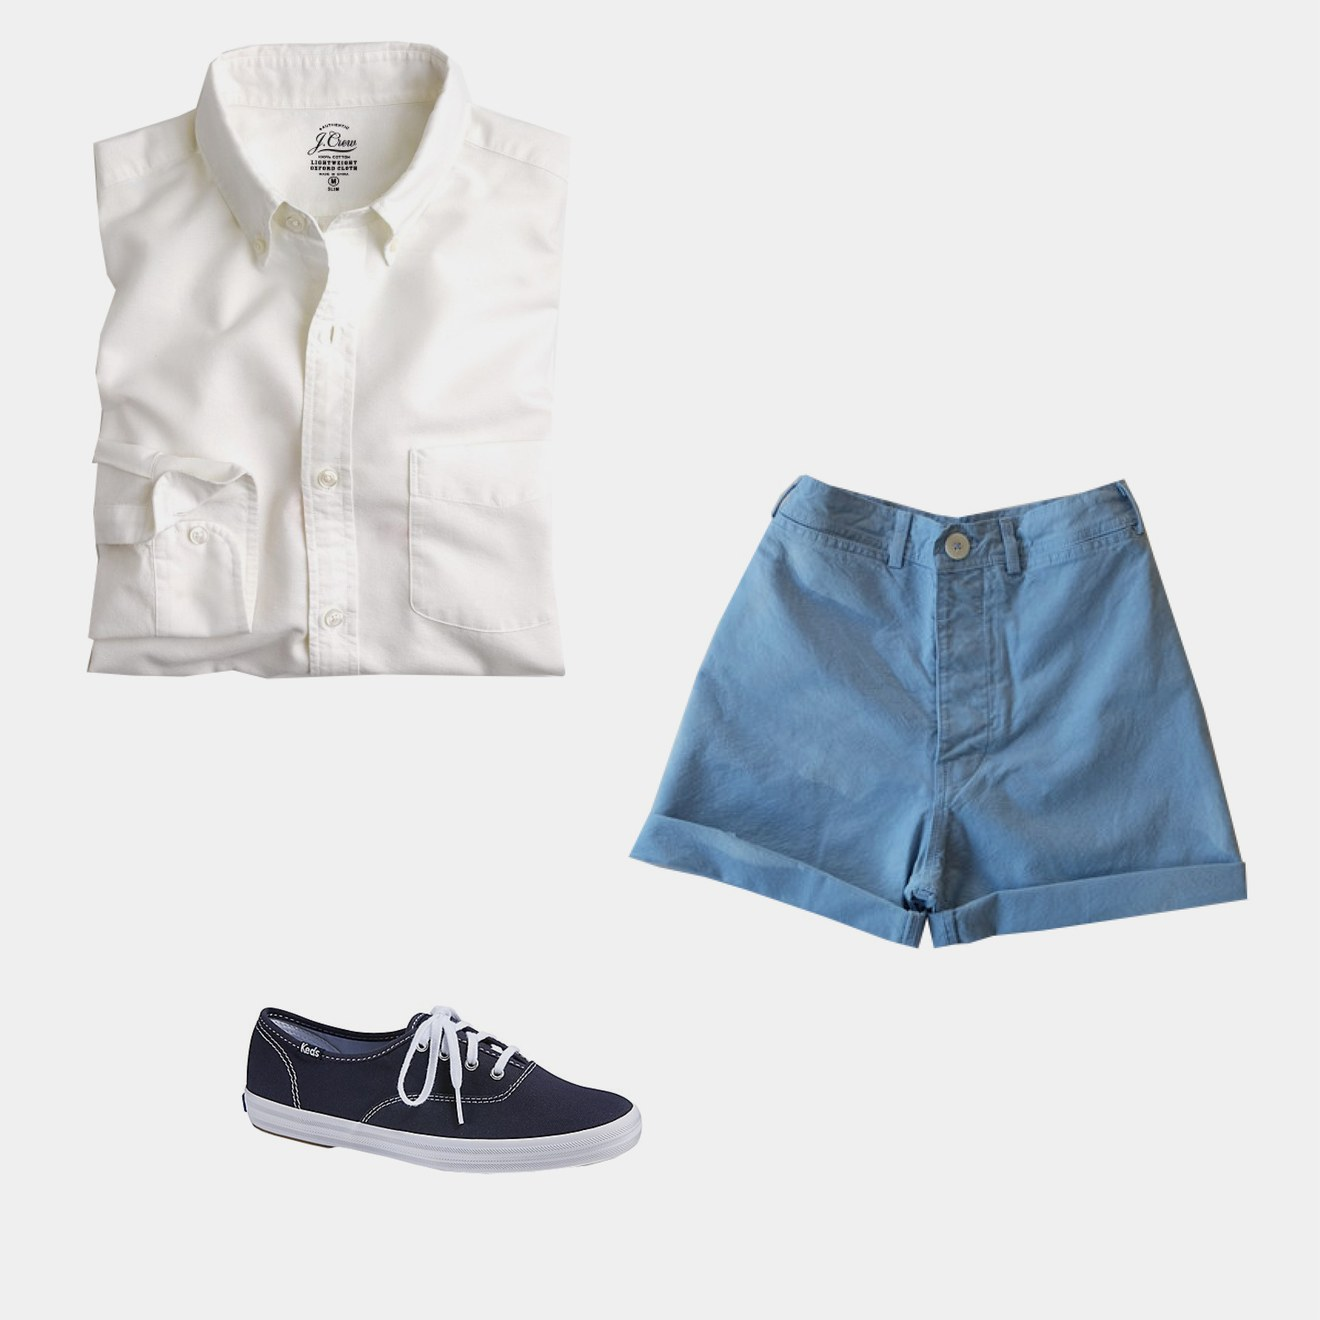 Photo: (Clockwise from top left) Courtesy of jcrew.com; Courtesy of jessekamm.world; Courtesy of keds.com